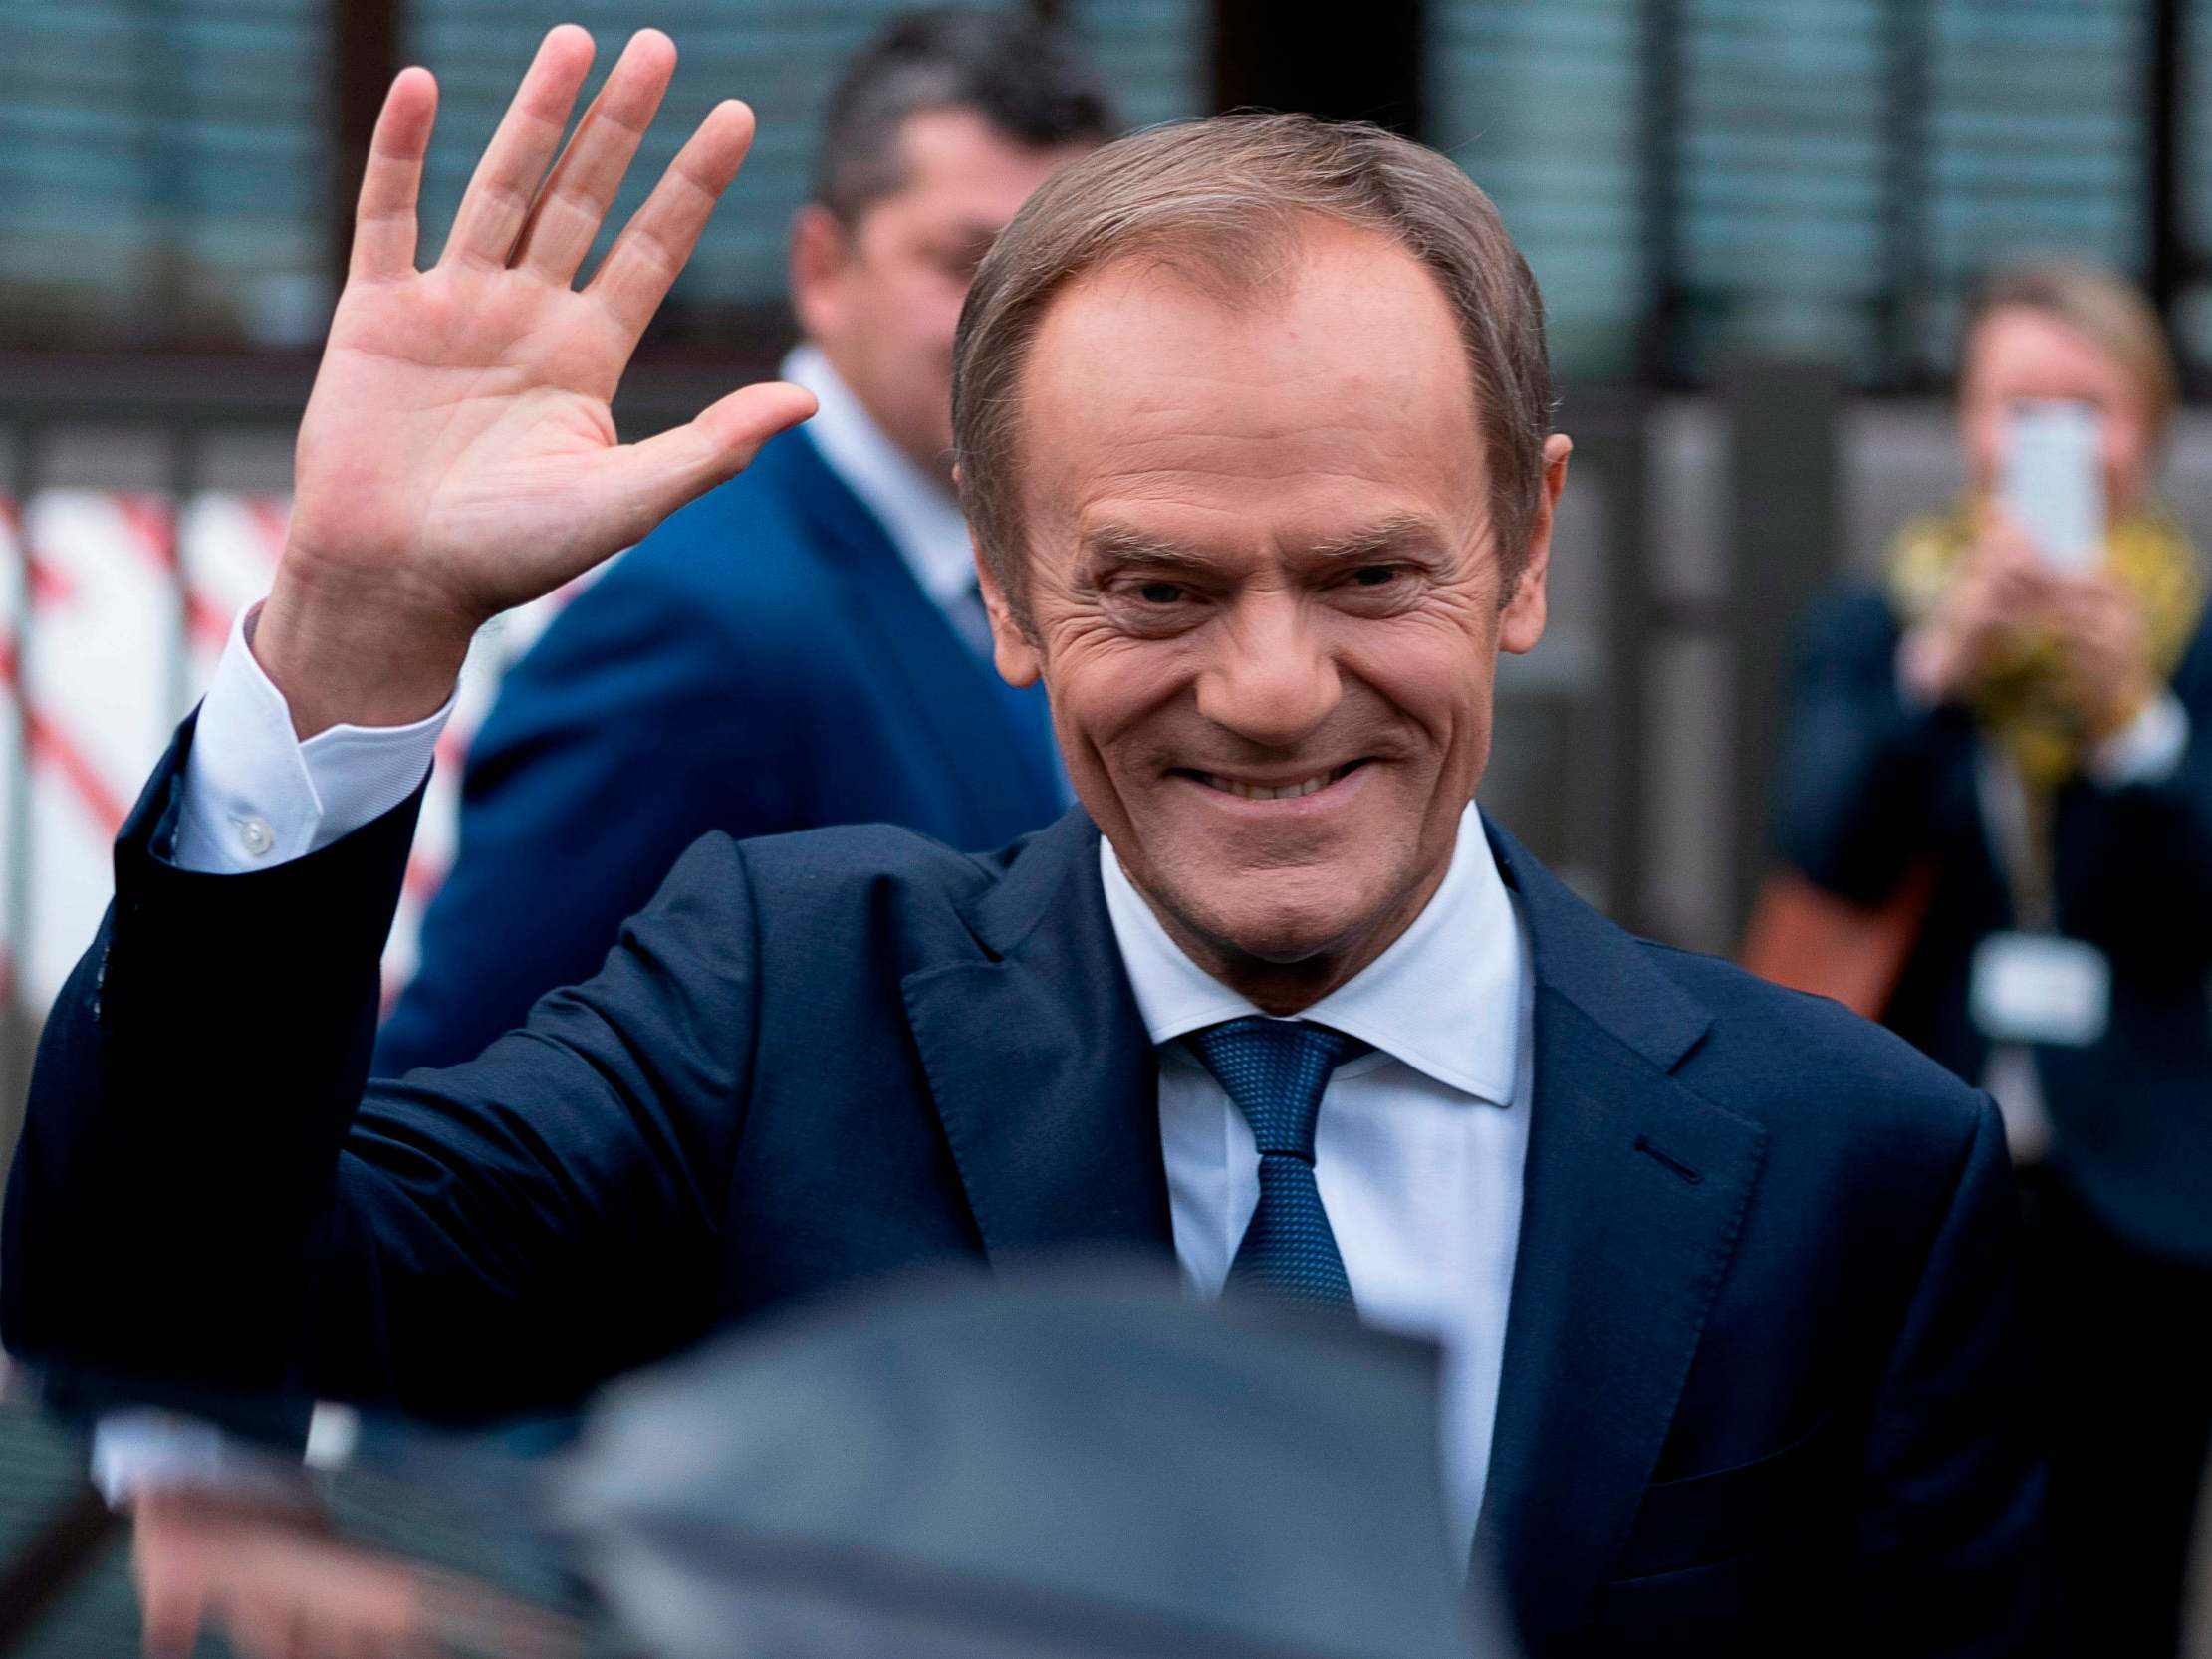 Brexit: Modern politicians show 'unprecedented readiness to lie', says Tusk